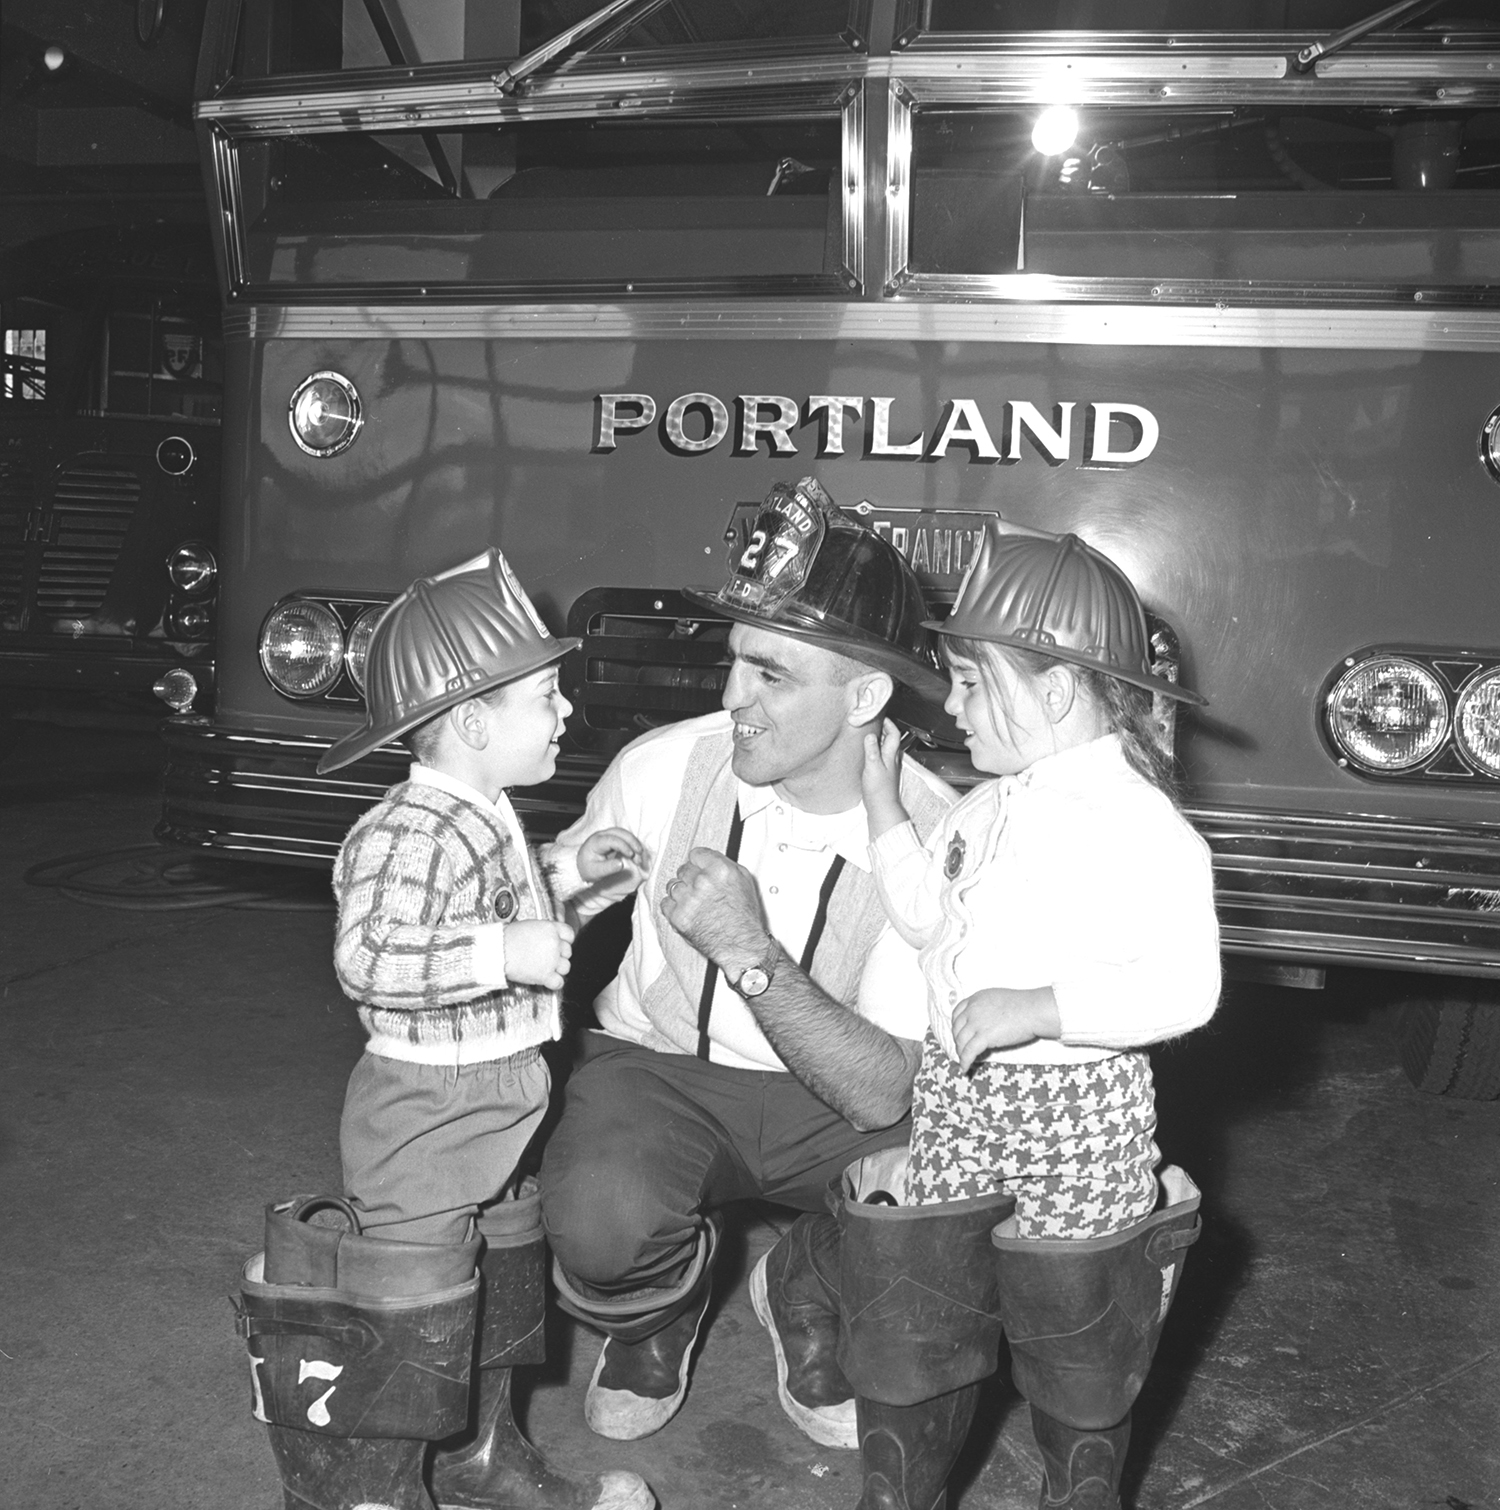 Portland Fire Department firefighter with children and fire engine, 1968. From the Portland Public Library archival collection of Portland Press Herald, Maine Sunday Telegram and Evening Express photos.